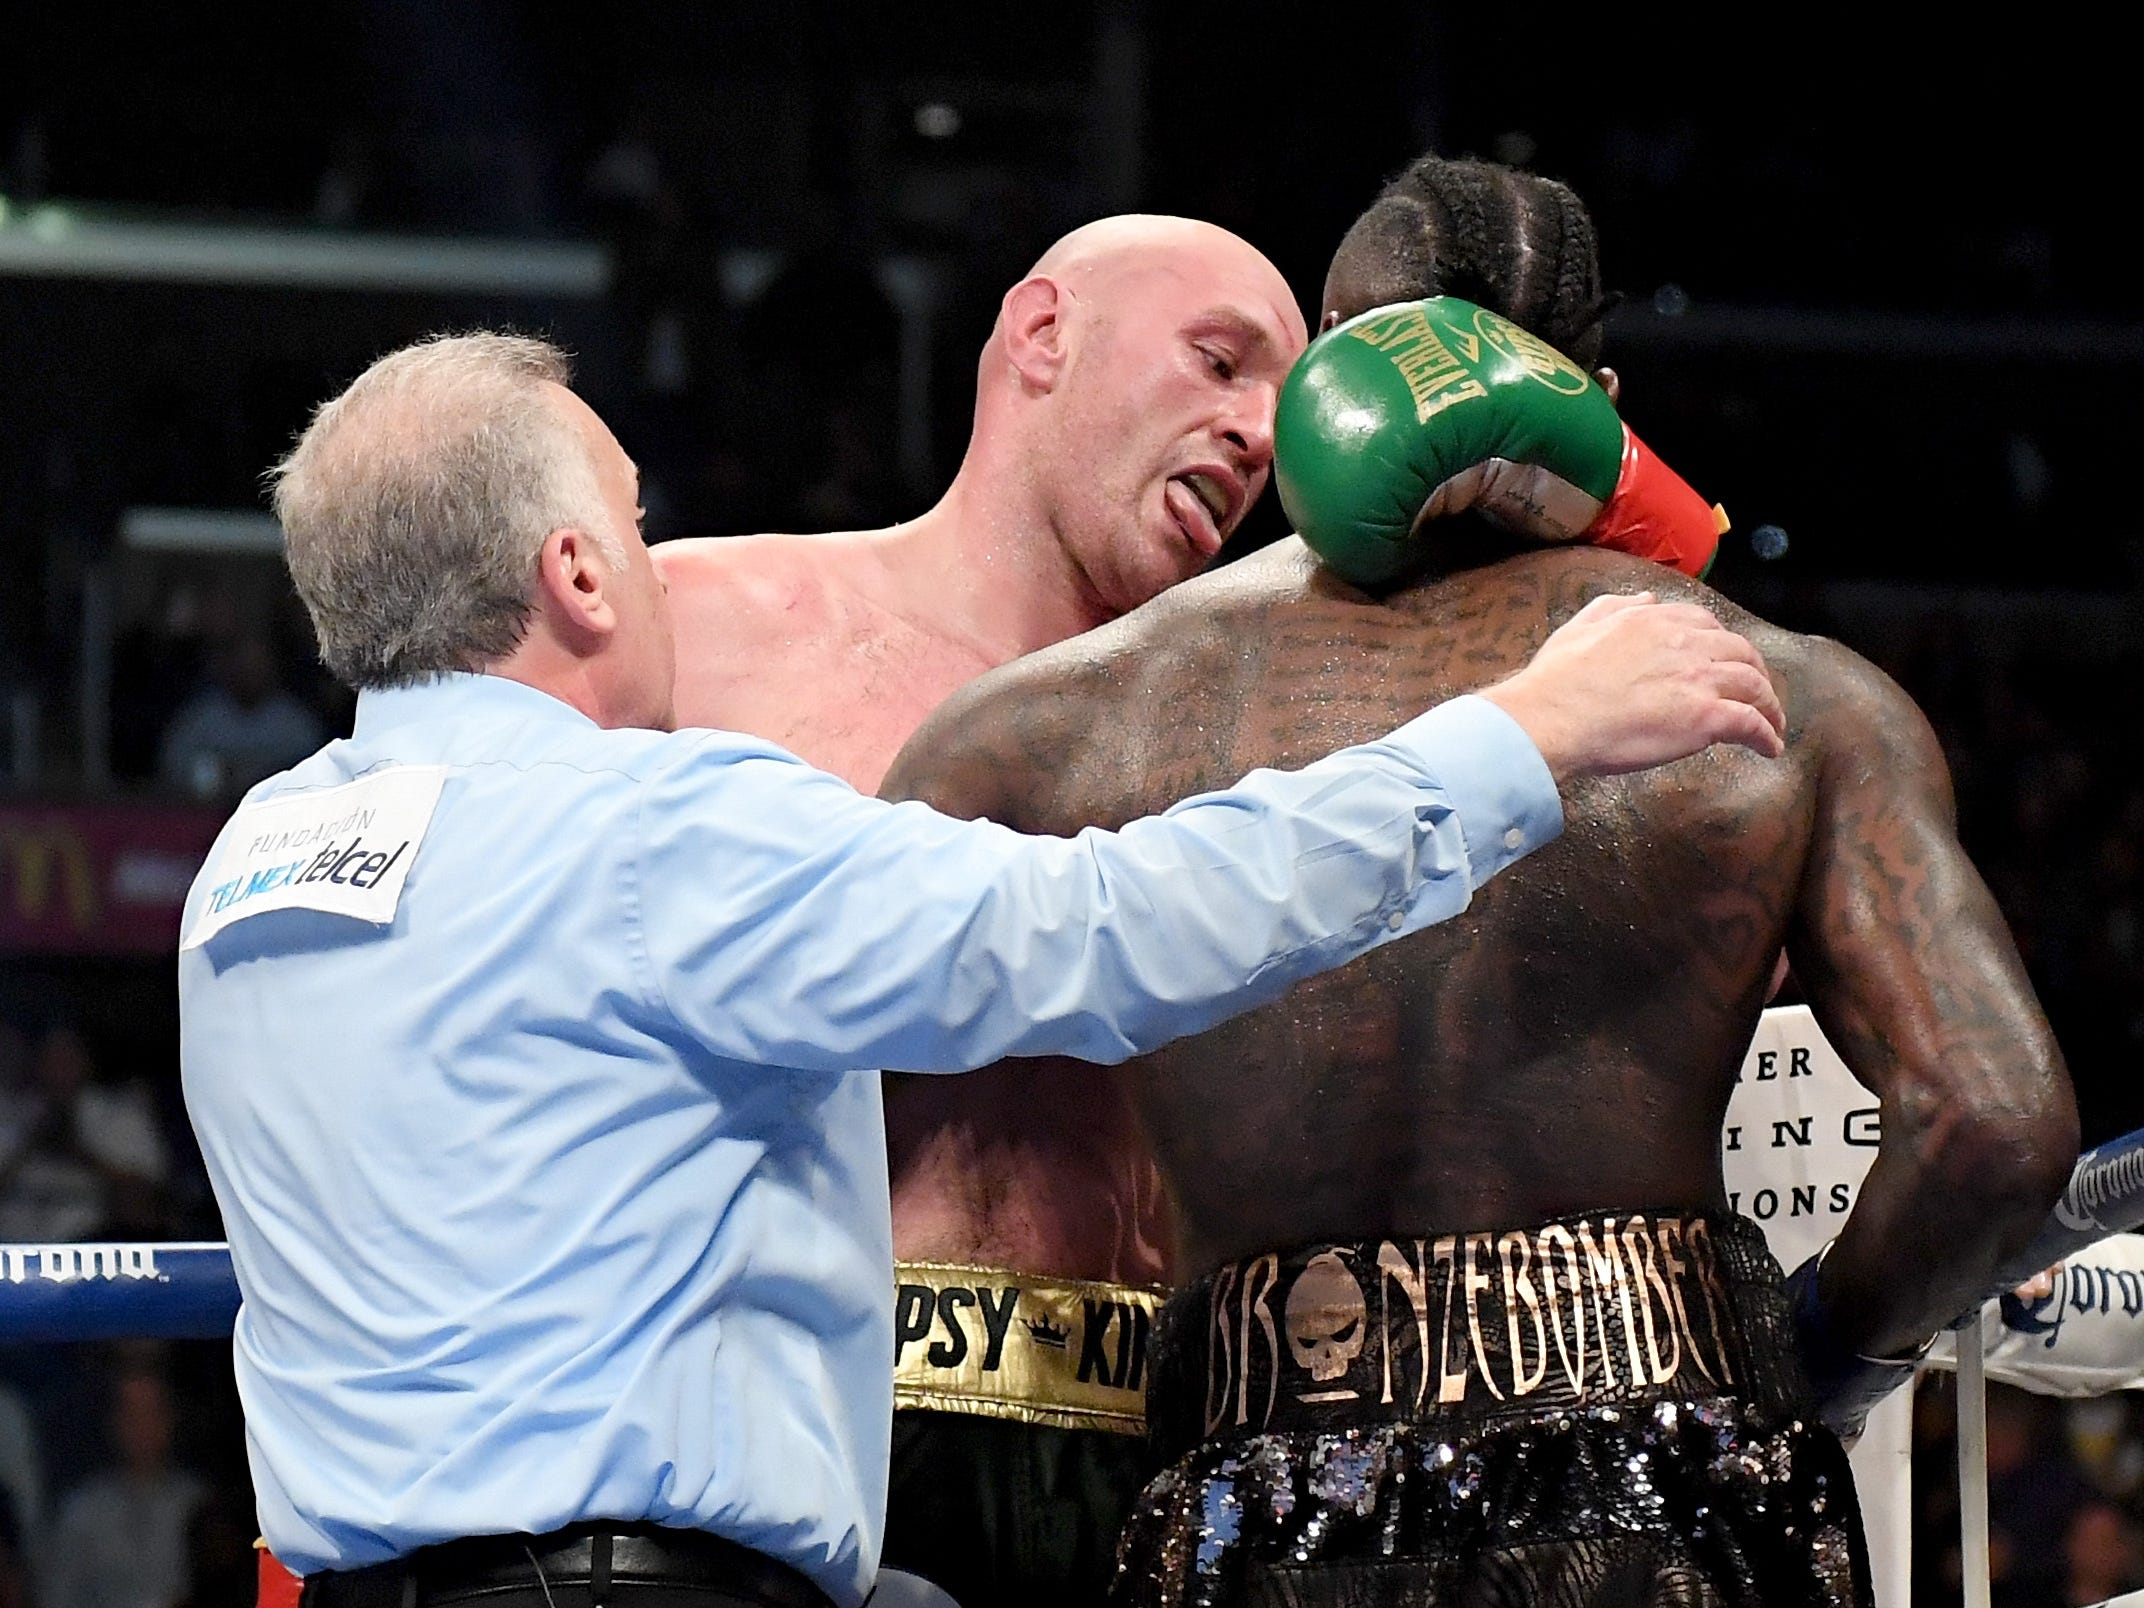 Tyson Fury faces Deontay Wilder at the end of the ninth round of their WBC heavyweight title fight Dec. 1 at Staples Center.